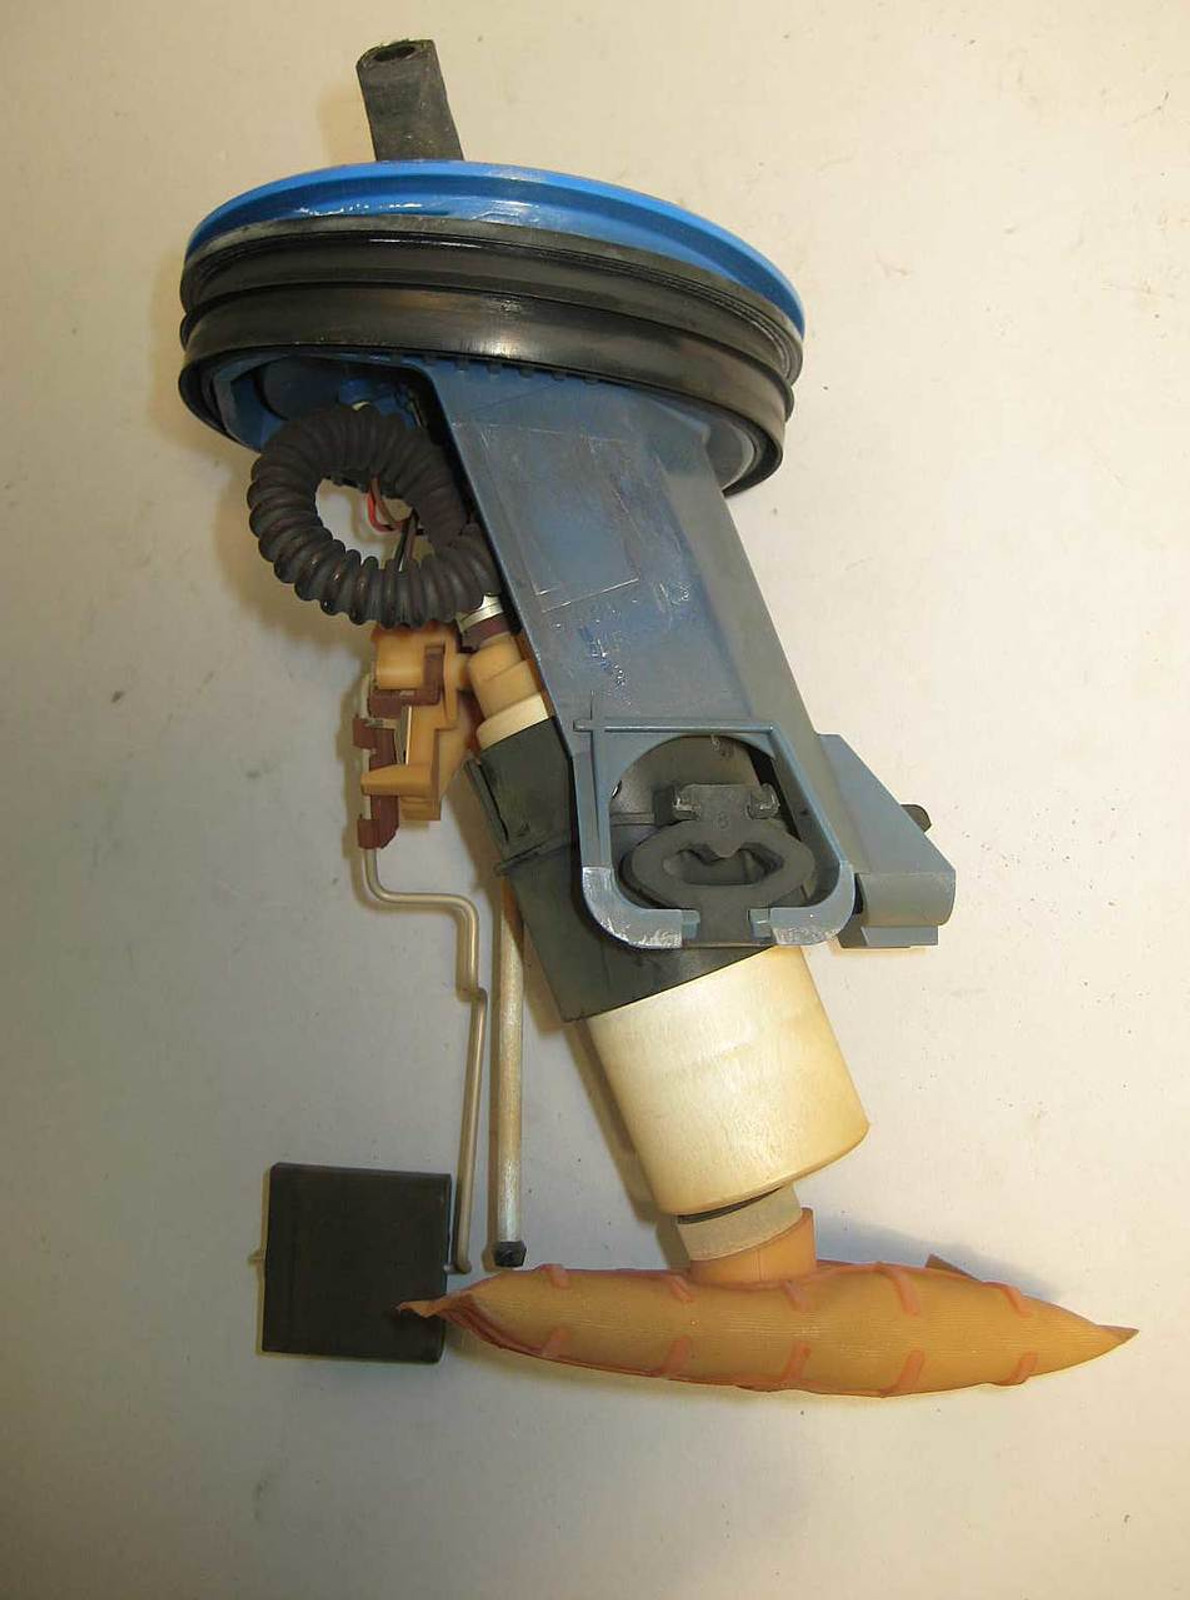 BMW E36 3-Series Late Model Fuel Delivery In-Tank Pump 1995-1999 VDO